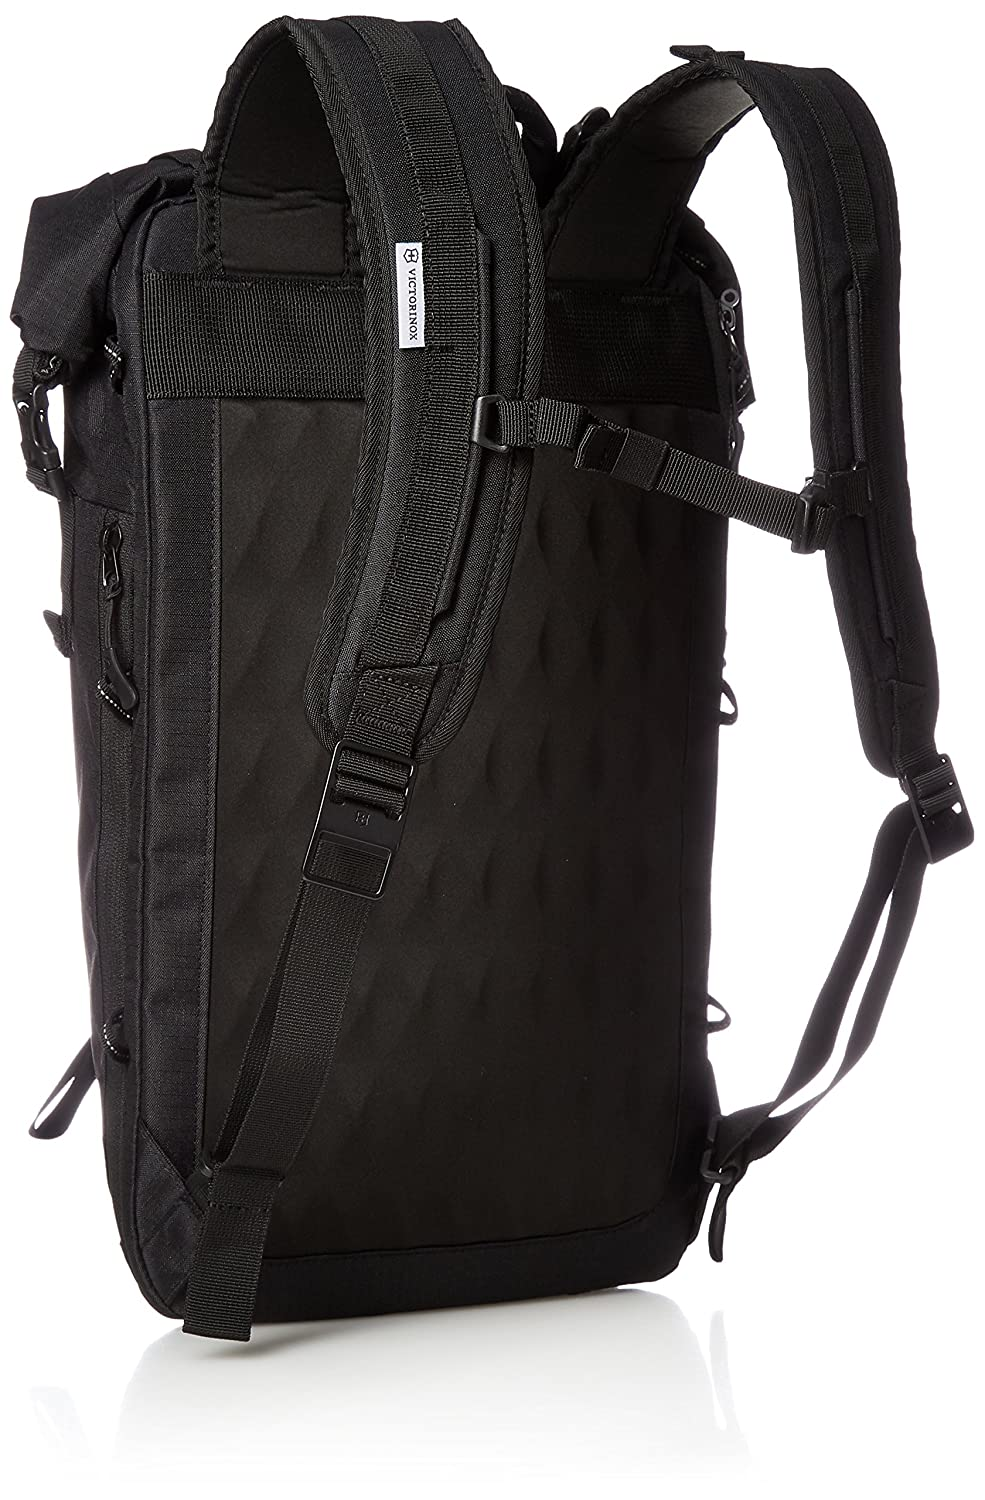 Amazon.com: Victorinox Altmont Active Rolltop Compact Laptop Backpack, Black One Size